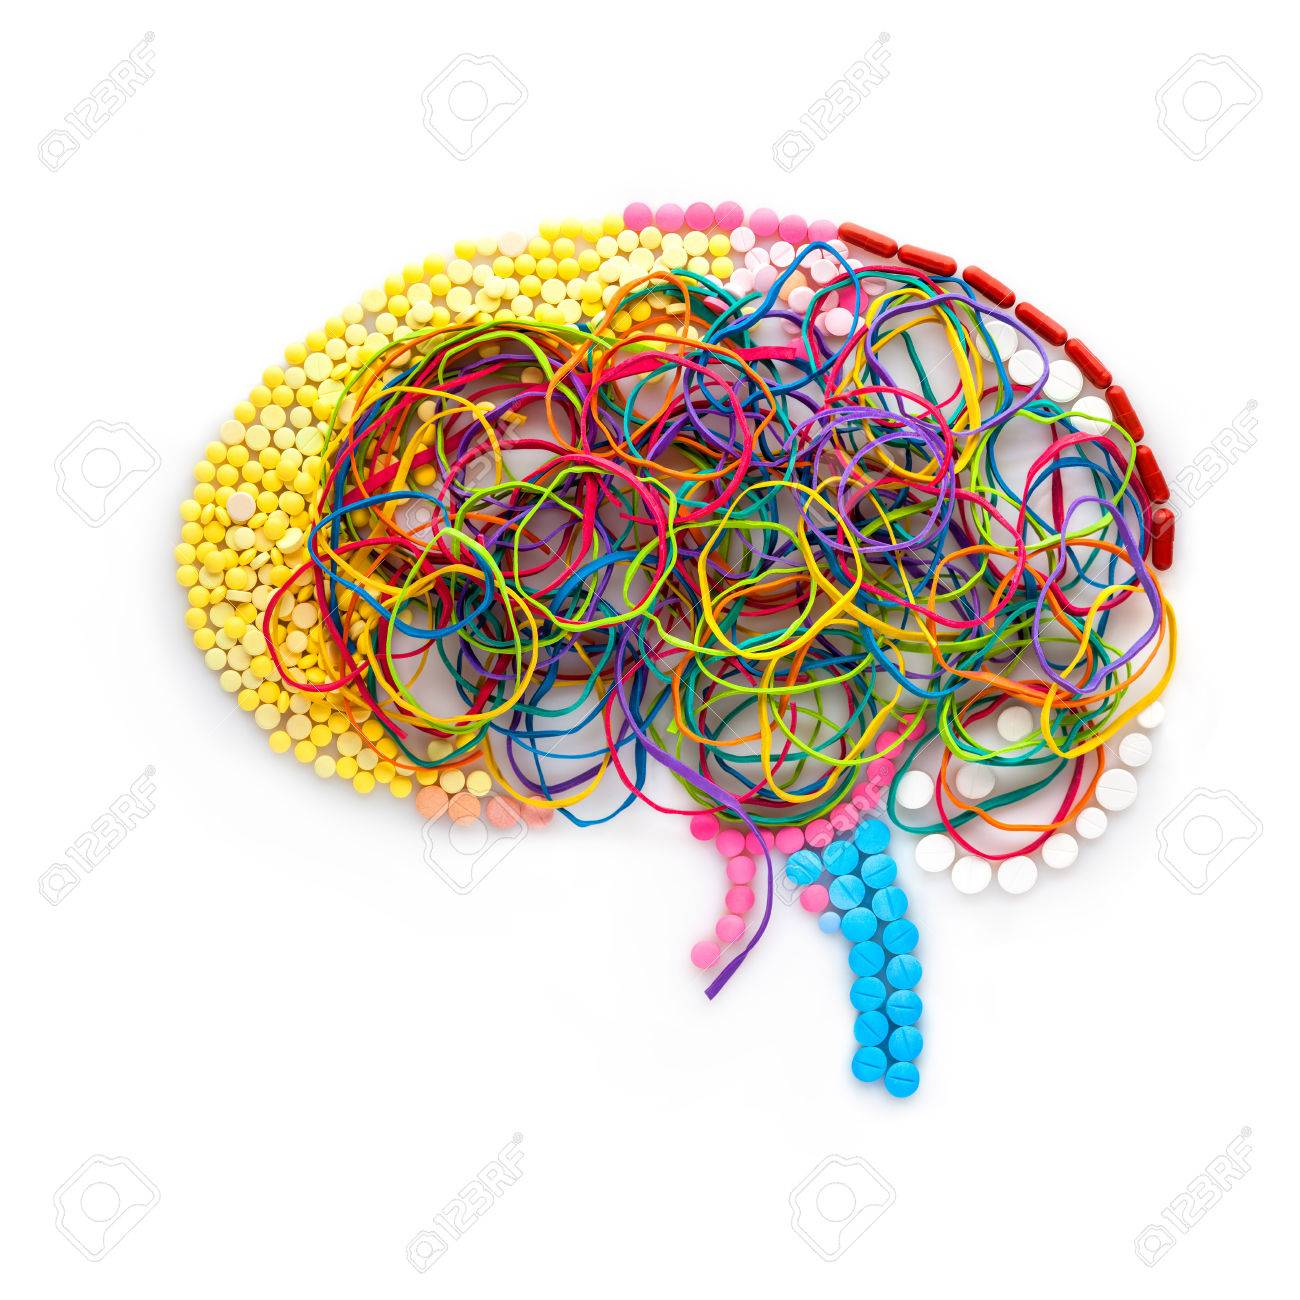 Creative concept of a human brain made of drugs, pills and colorful rubber bands as a memory illustration. - 77060597